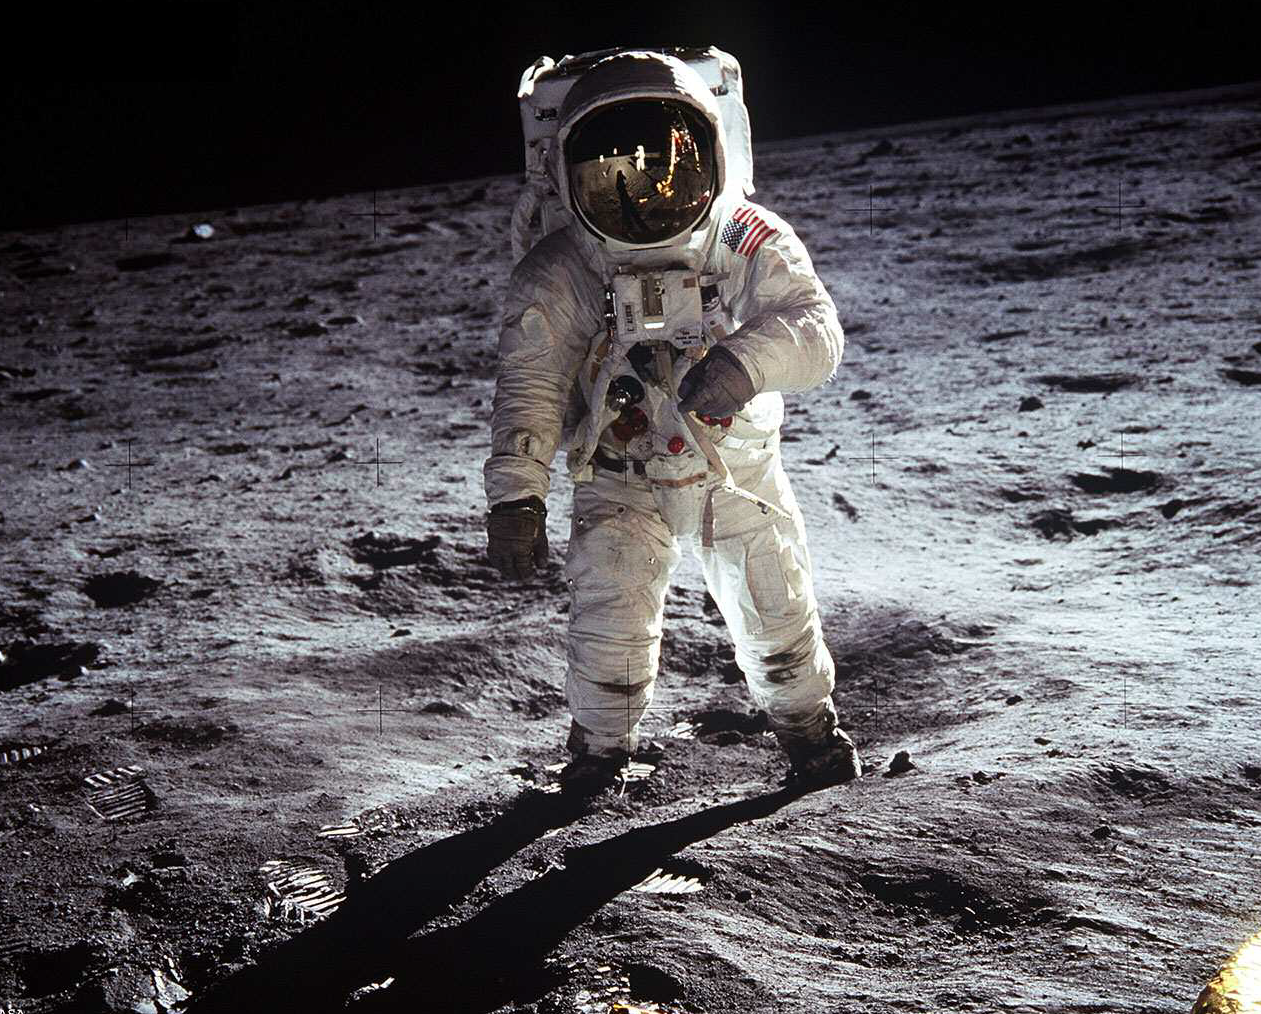 Picture of Neil Armstrong on the moon.